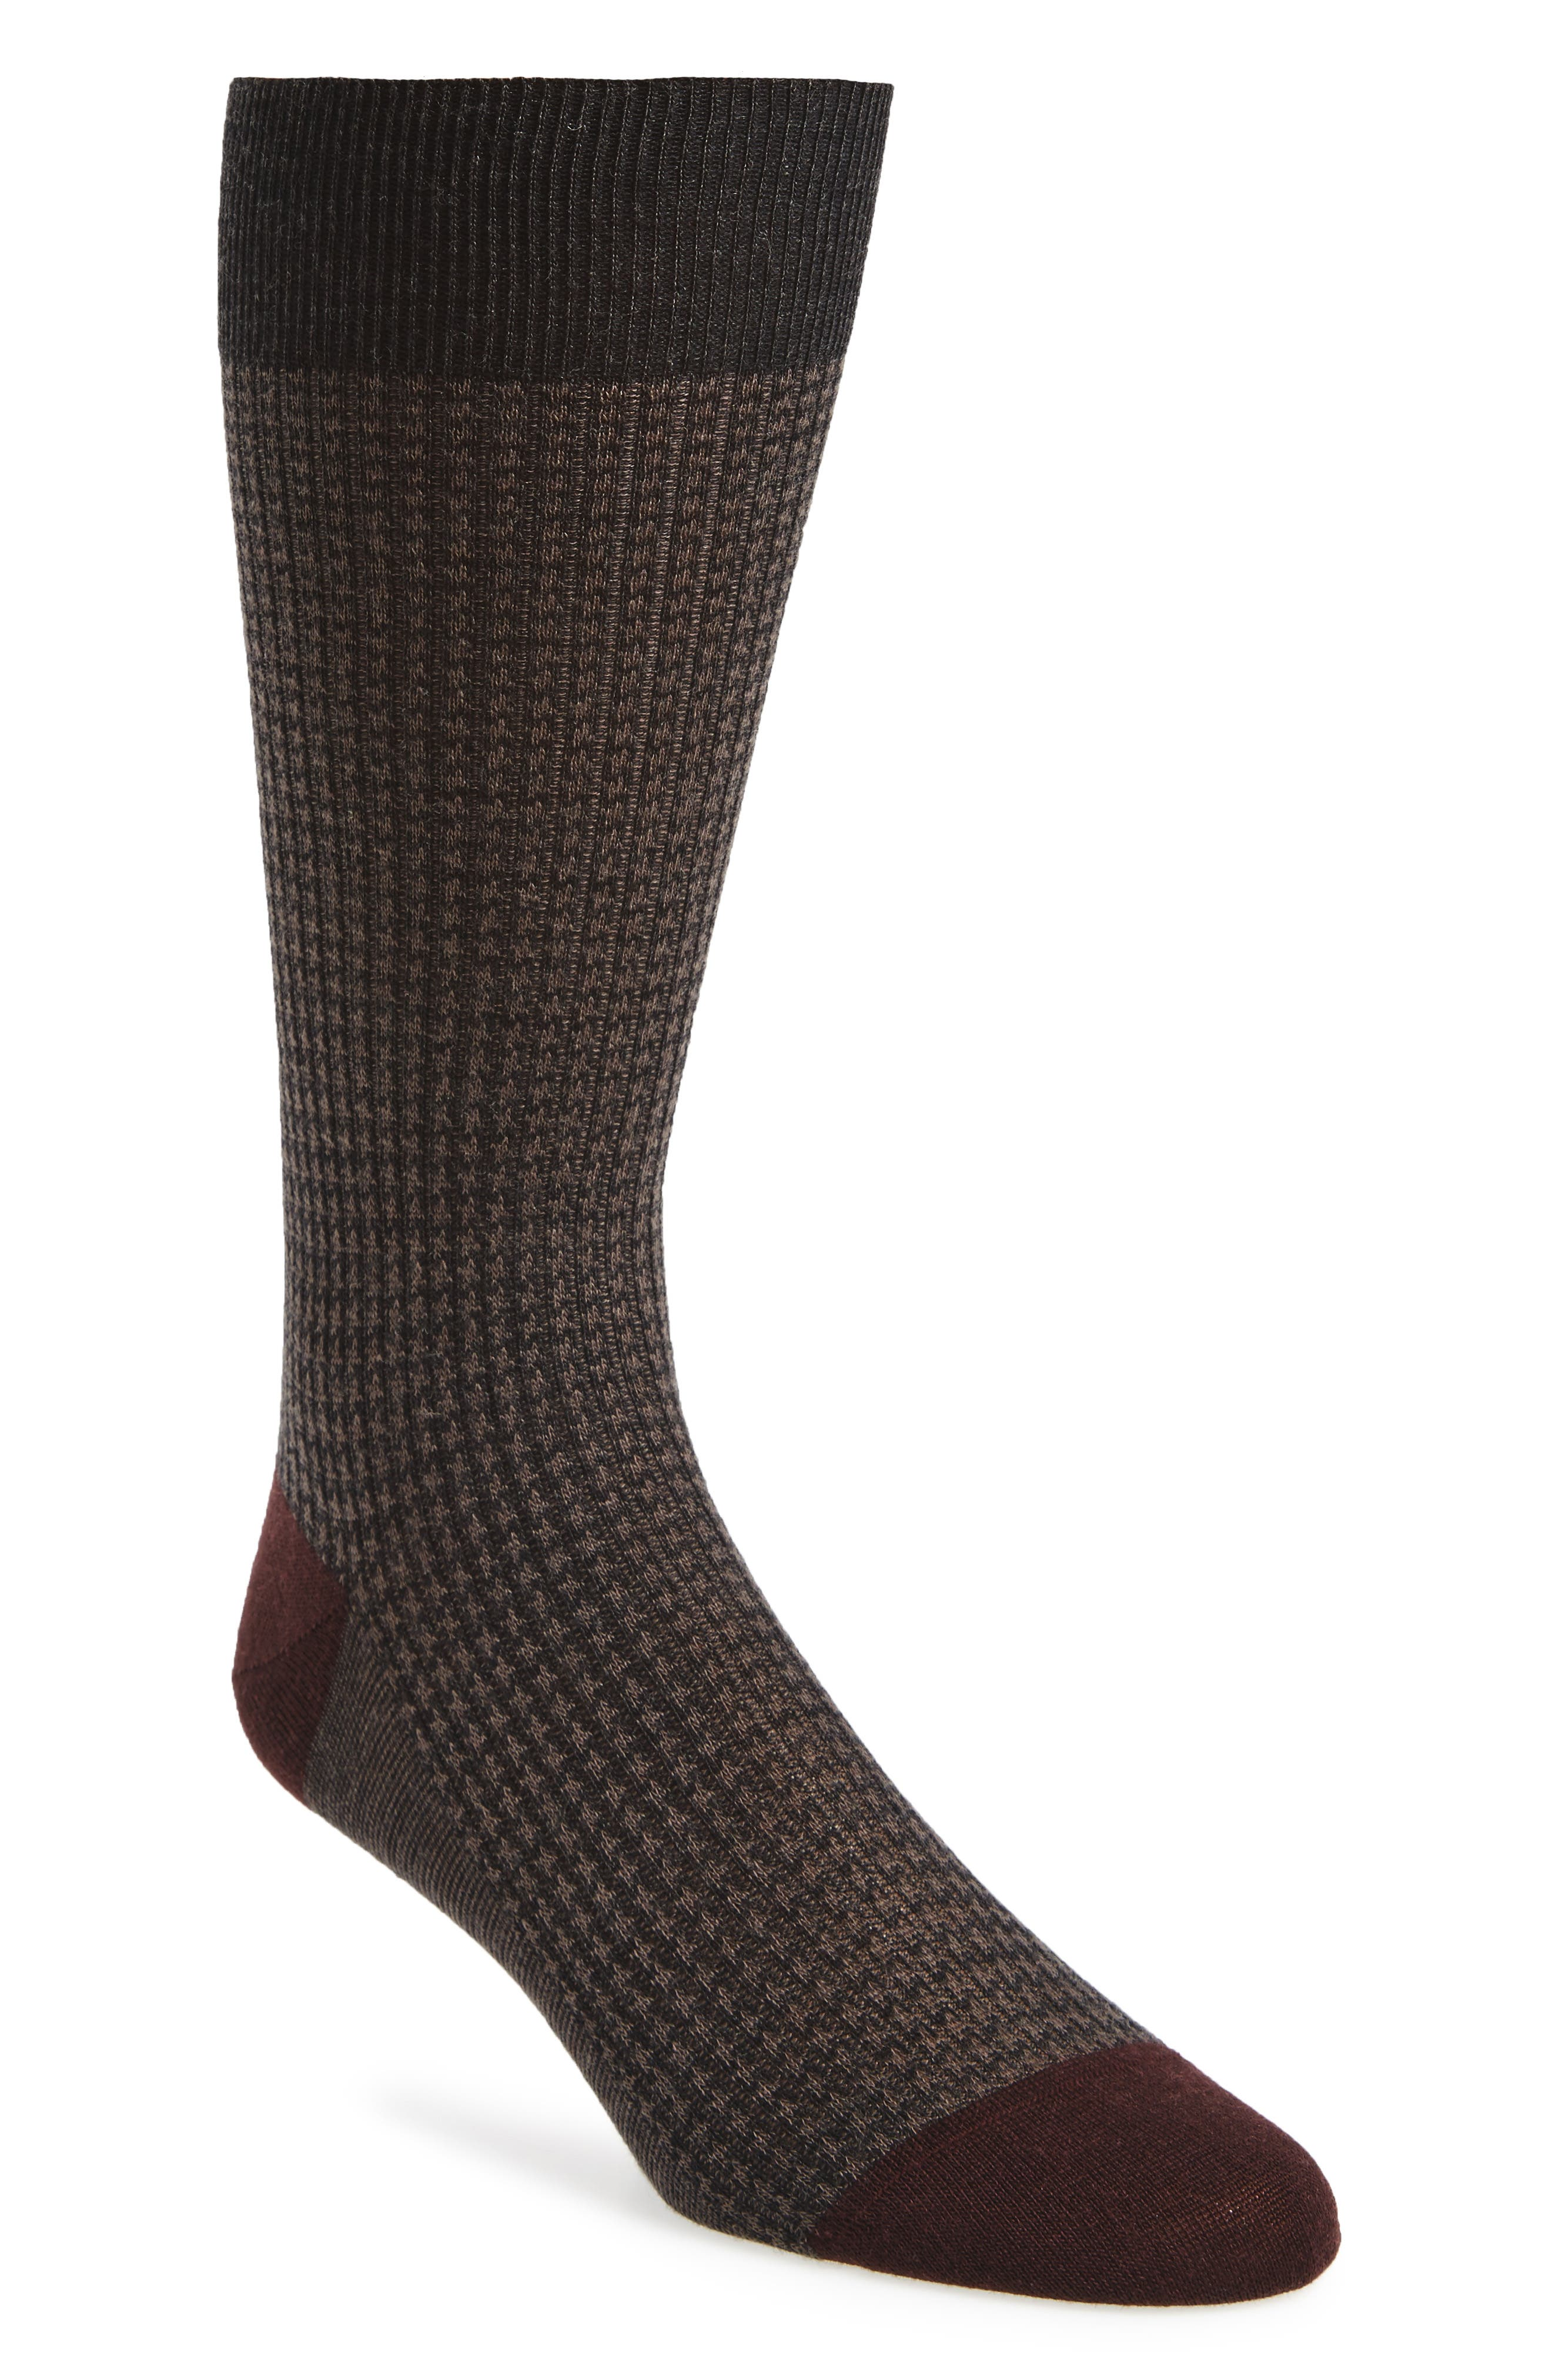 Houndstooth Wool Blend Socks,                             Main thumbnail 1, color,                             021